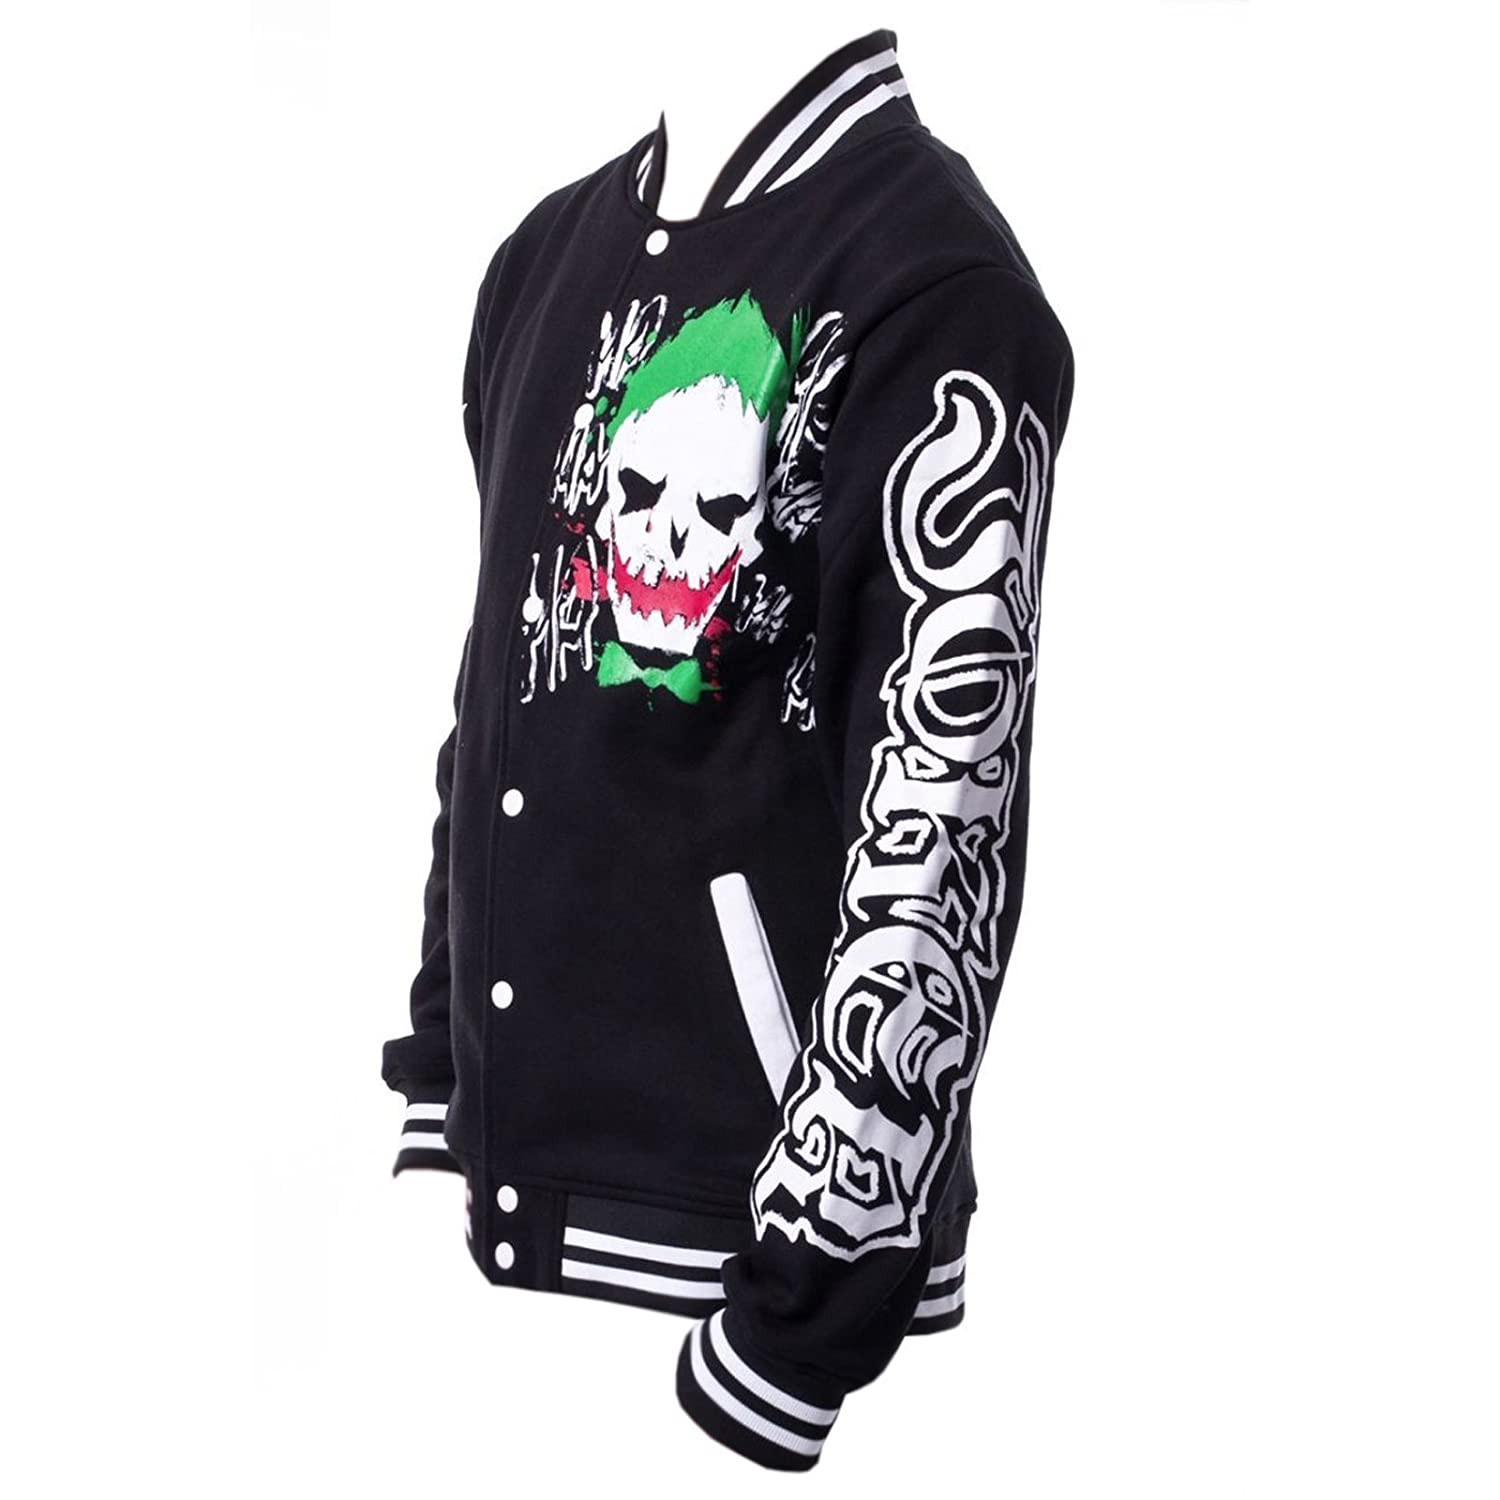 Amazon.com: DC Comics Unisex 10 – 18 Joker, color negro y ...